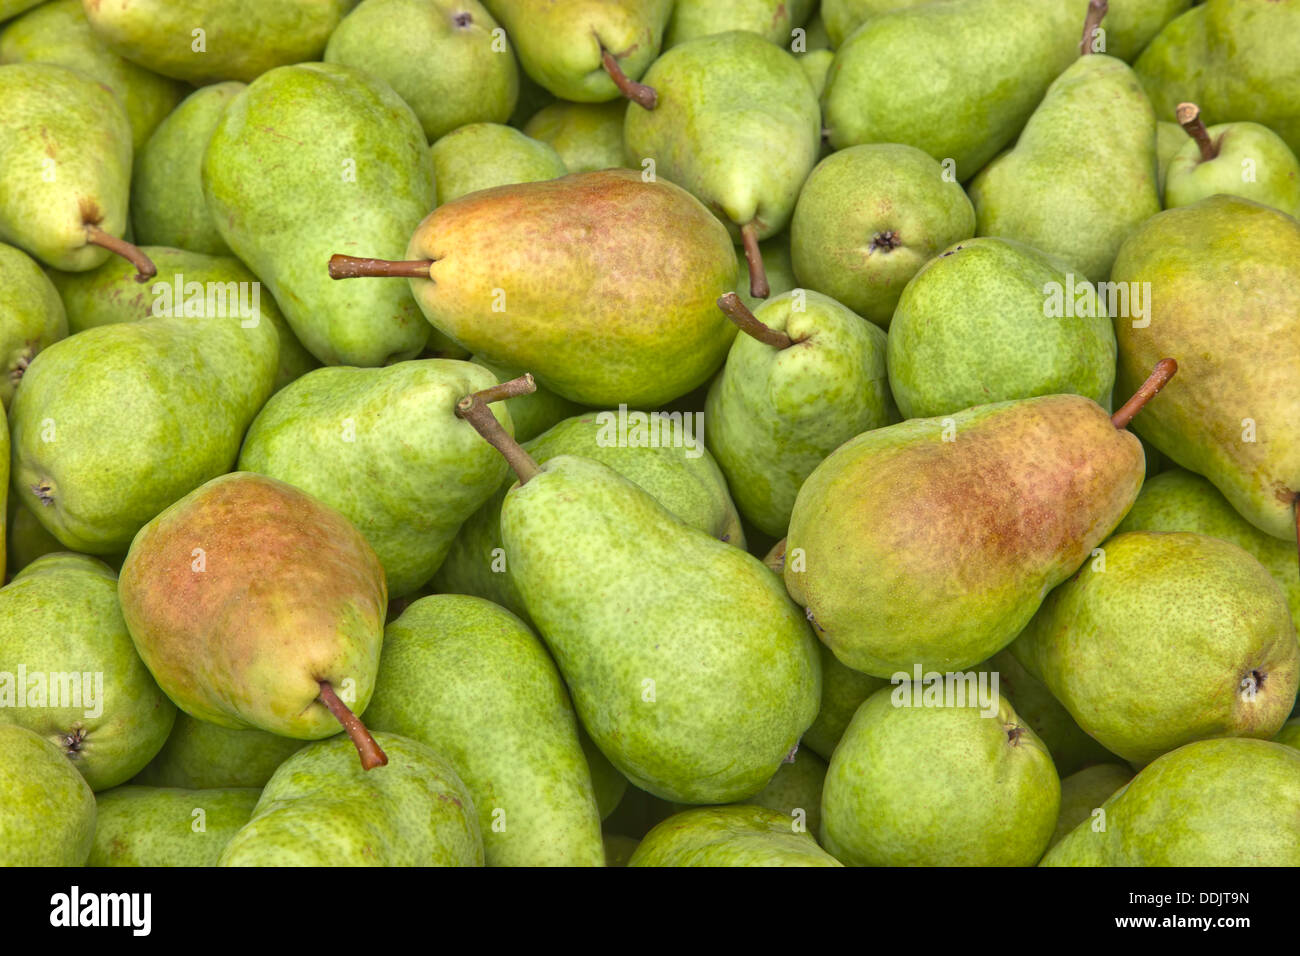 Farmers market, harvested bartlett pears 'Pyrus communis'. - Stock Image